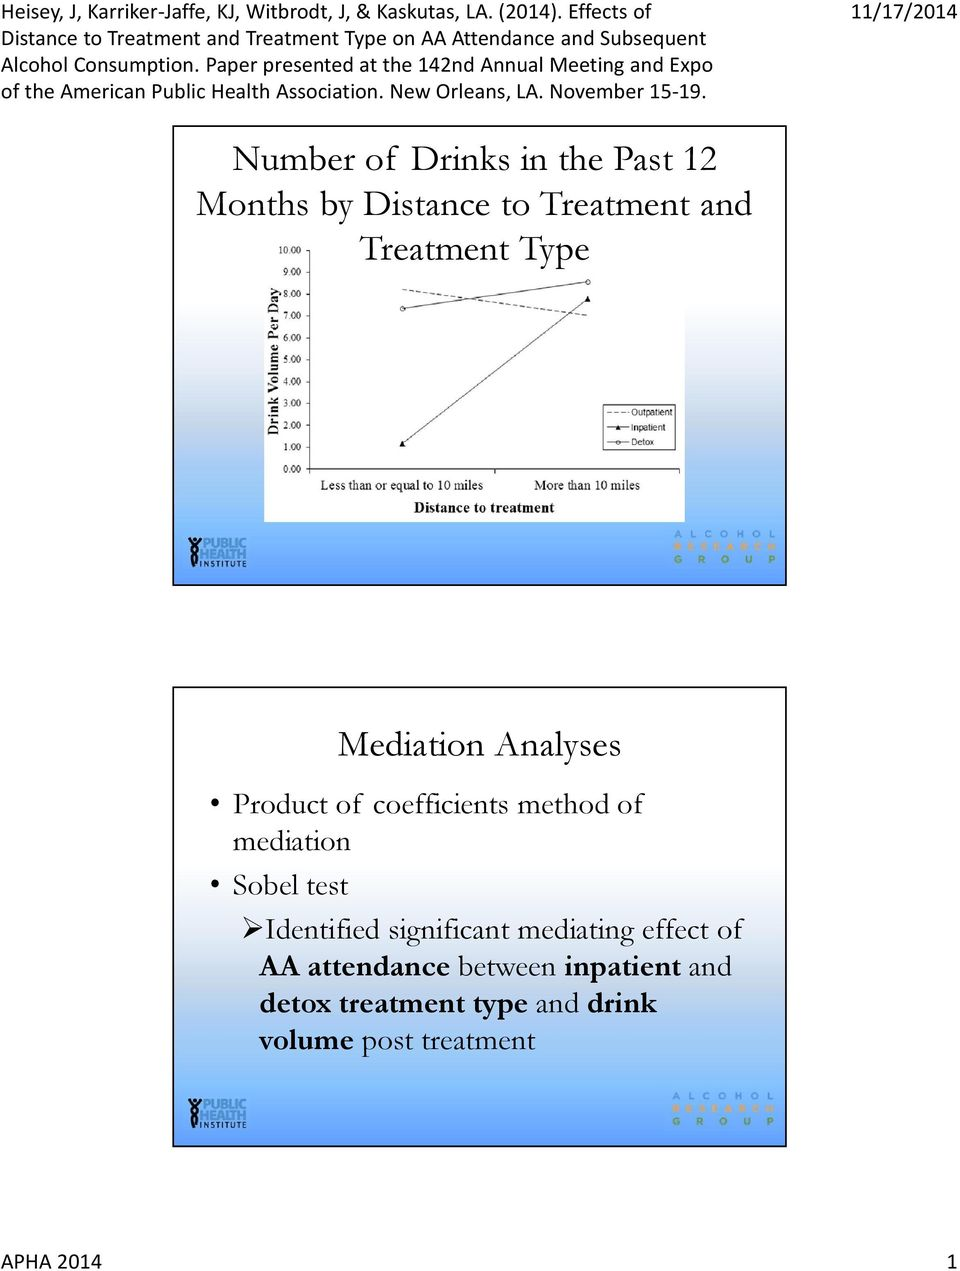 mediation Sobel test Identified significant mediating effect of AA